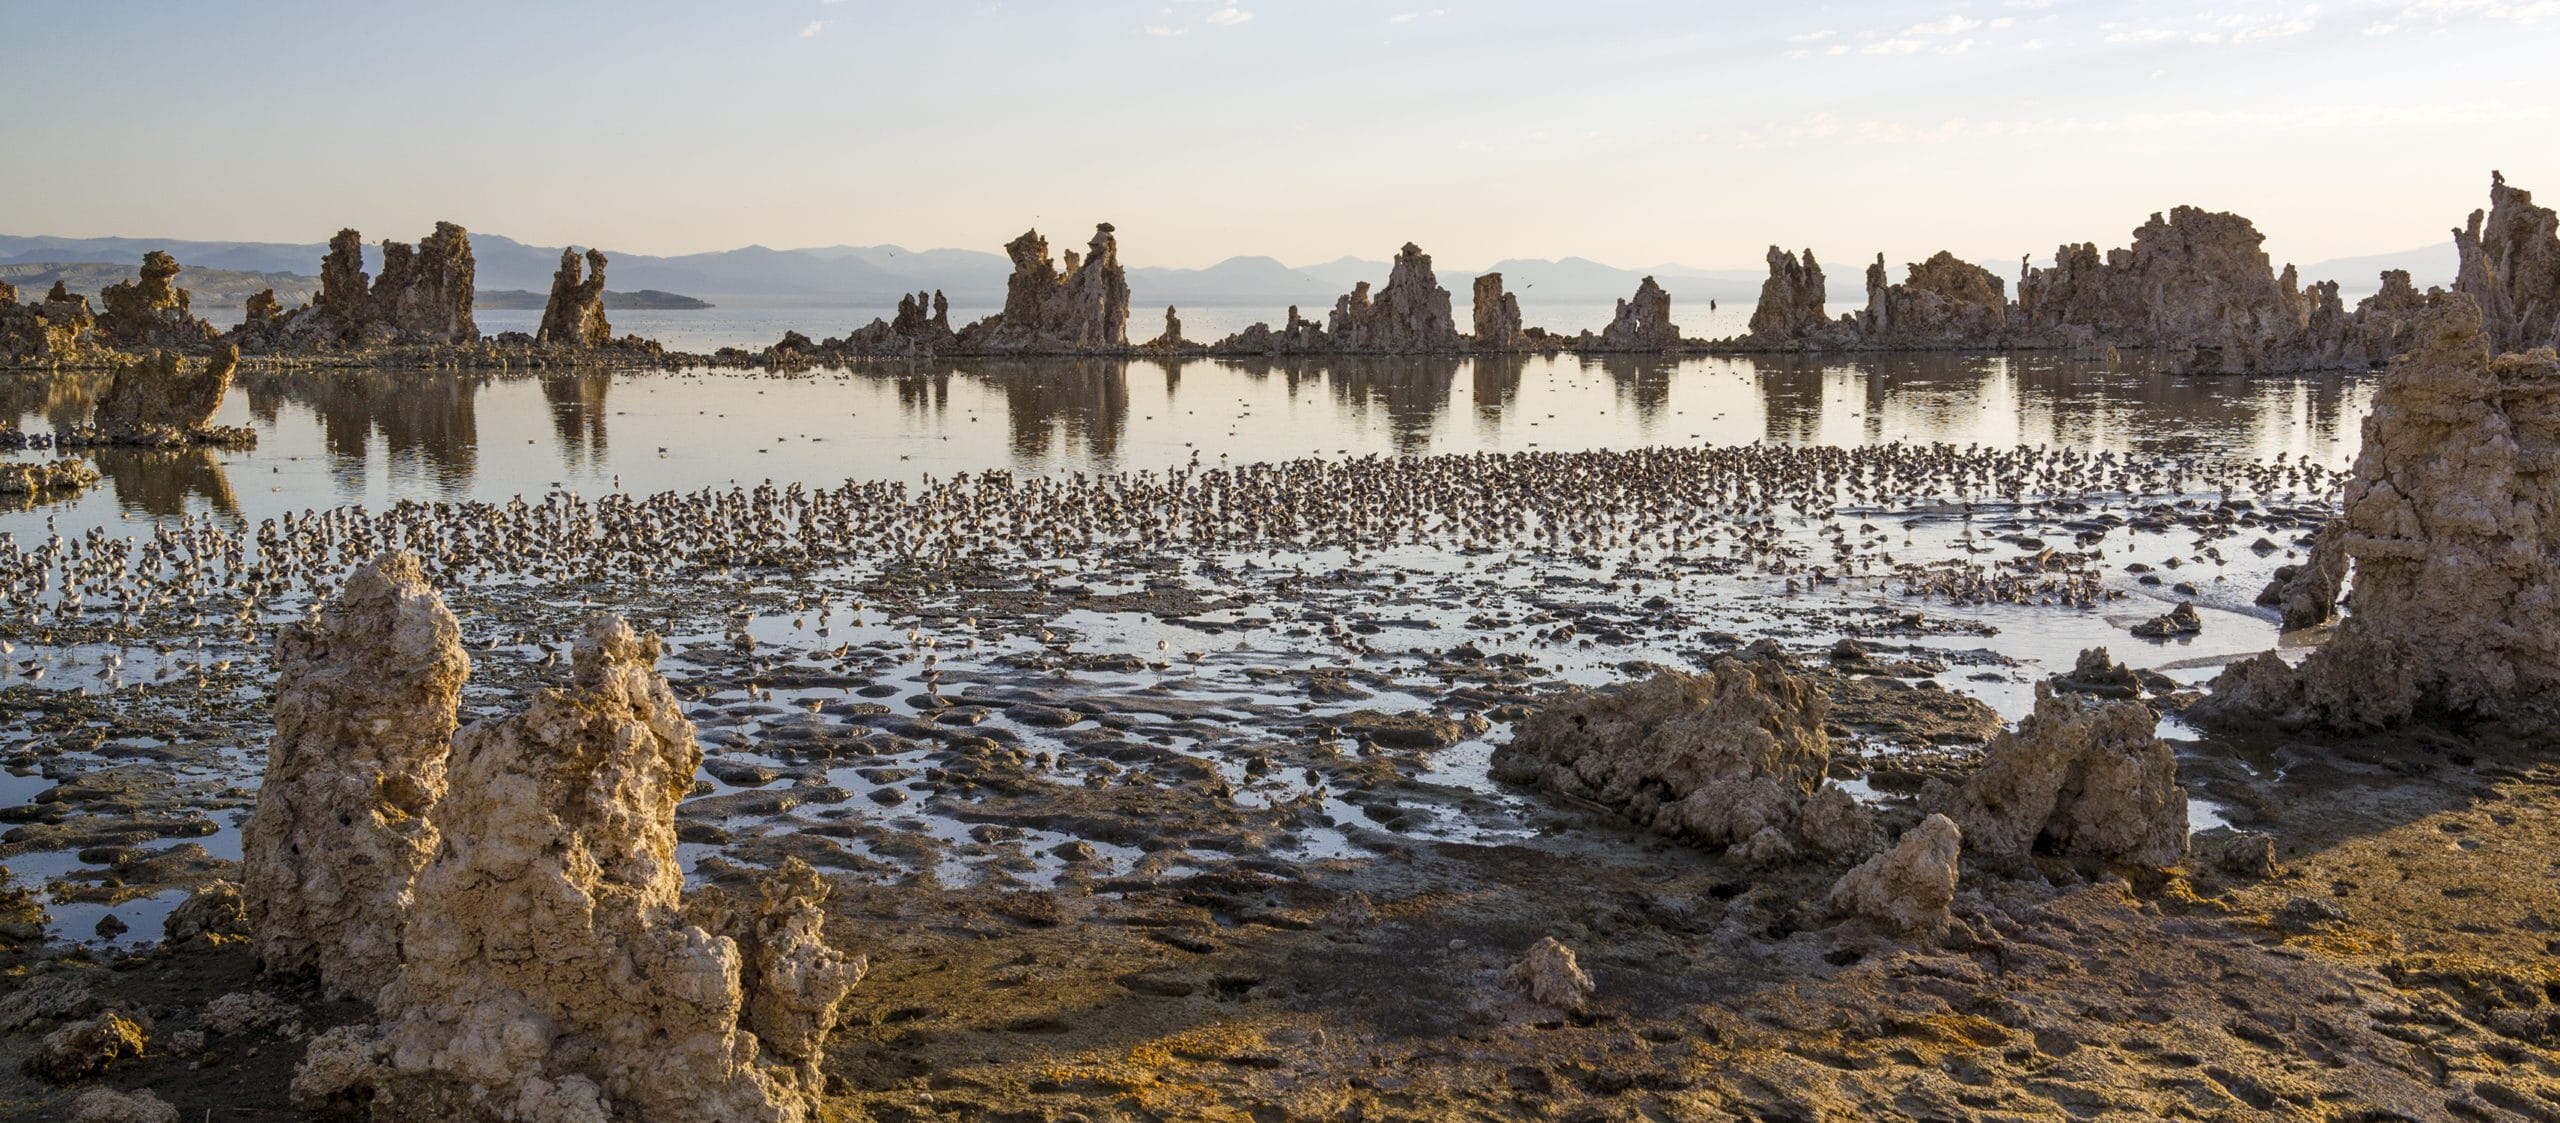 Tufa towers stand in Mono Lake with glassy reflections below and hundreds of small shorebirds fill the water just off shore of the muddy shoreline.